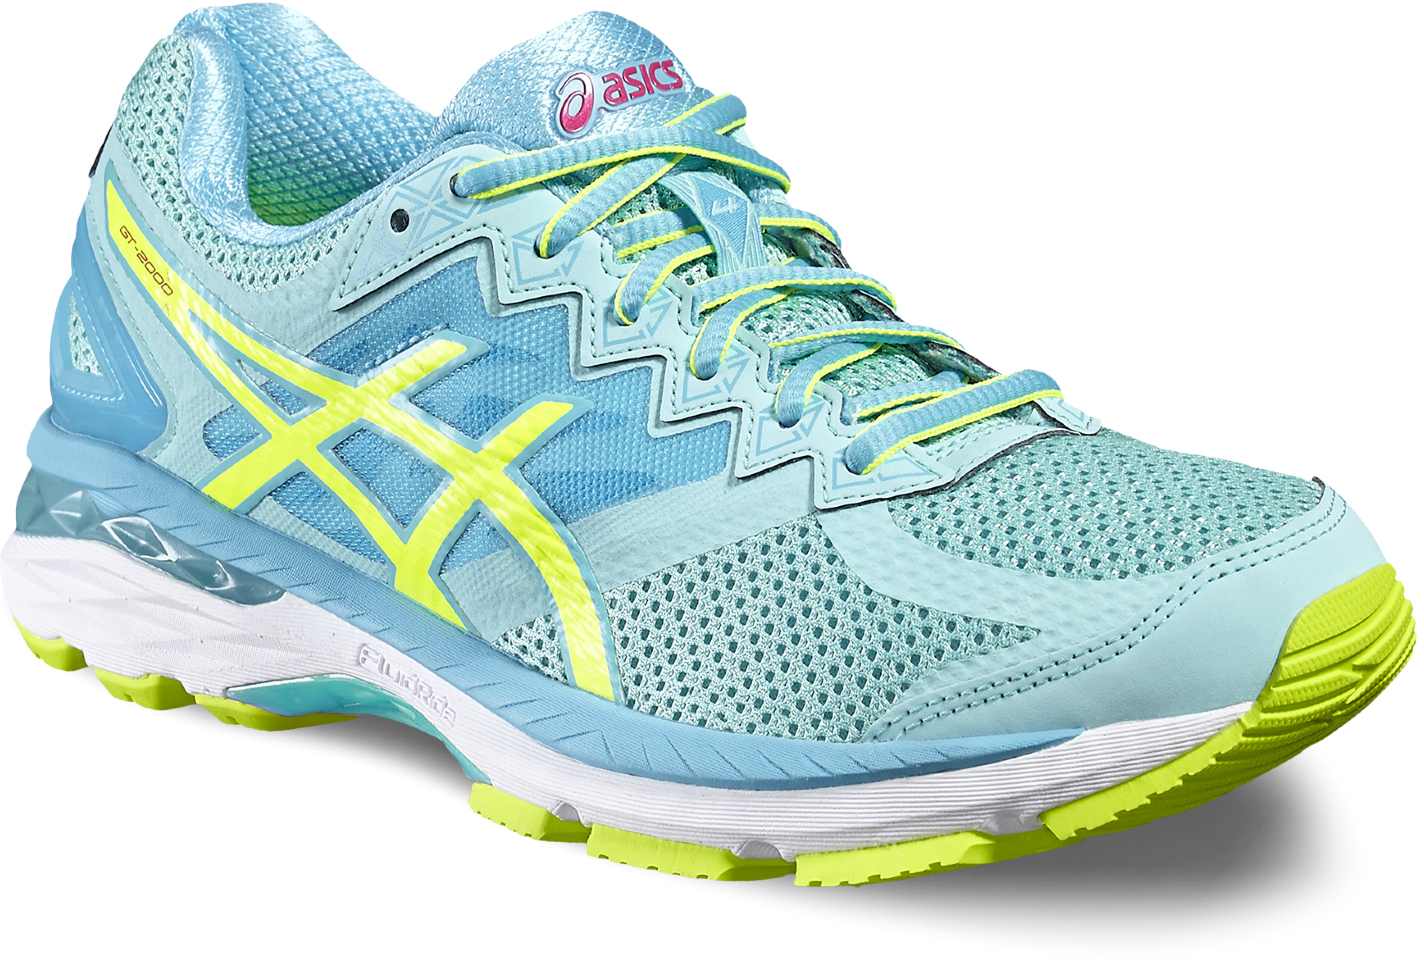 Women's Chaussures Gt RunningAsics 4 2000 Shoesaw16 De DIEYW29H